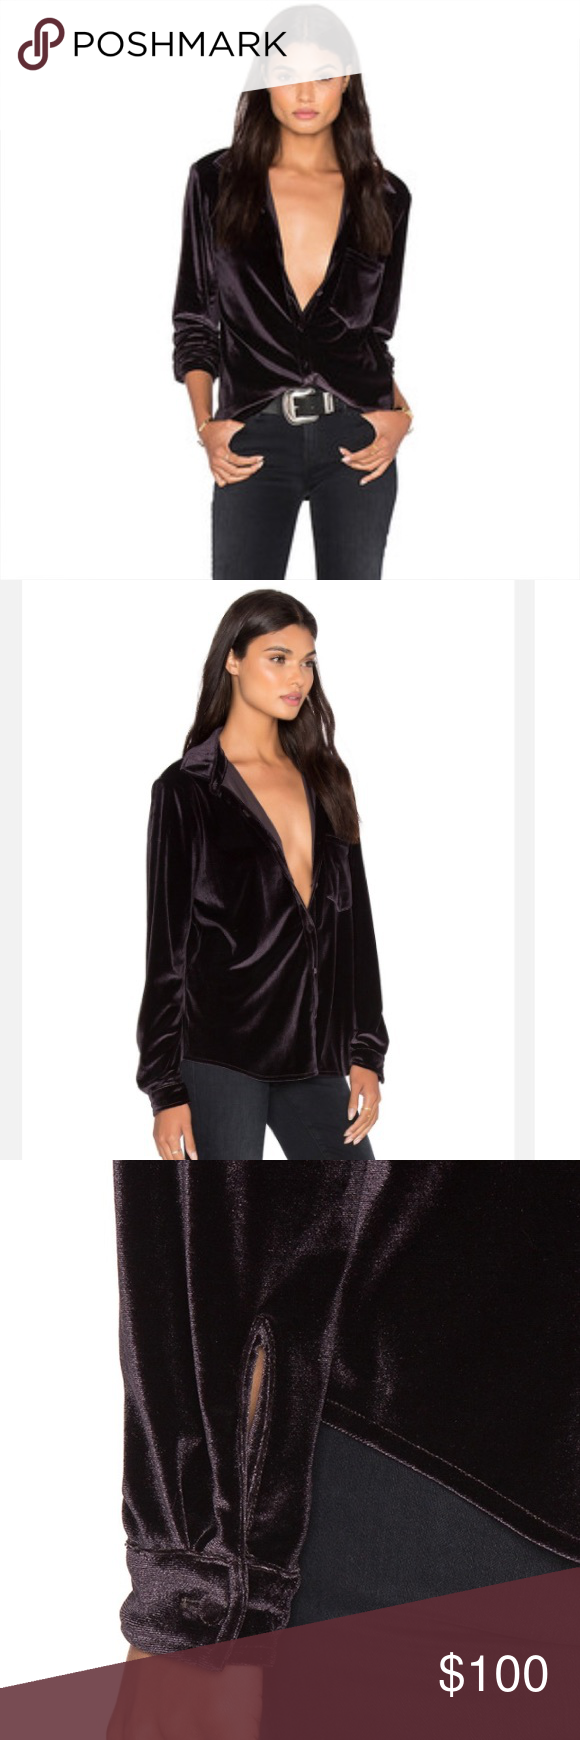 bc490218b LPA Top 16 velvet button down shirt blouse Perfect shape! Can be buttoned  all the way up or worn open as seen here. It's a dark purple/black velvet.